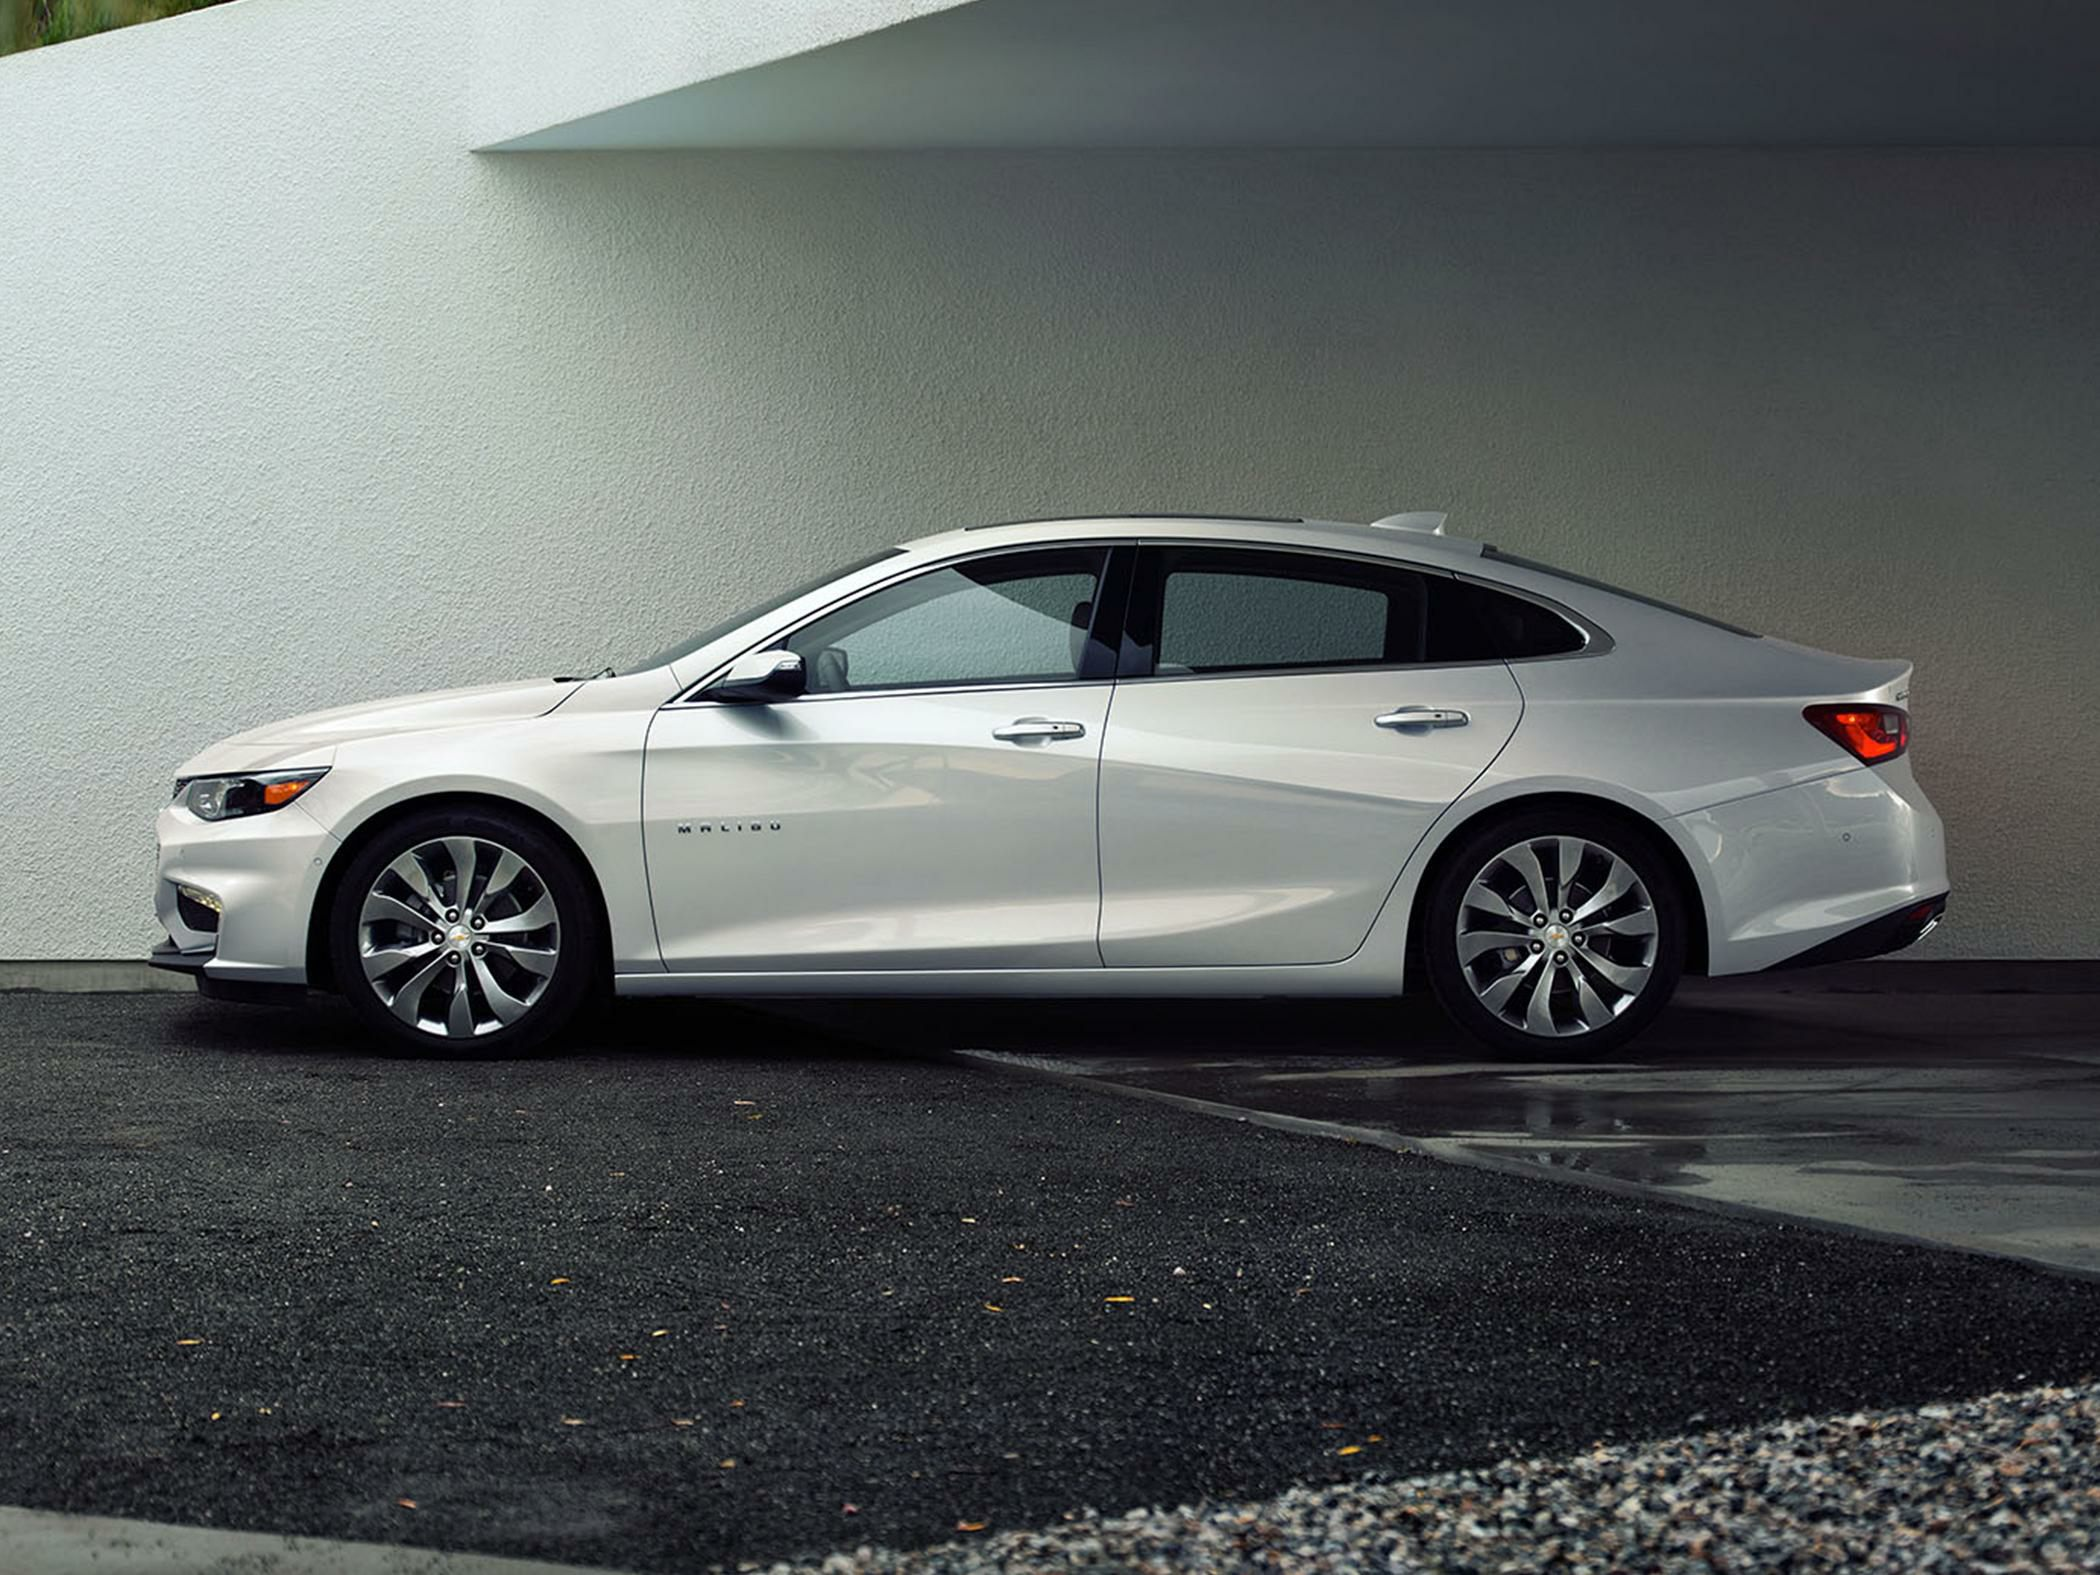 2018 Chevrolet Malibu Deals Prices Incentives Leases Overview